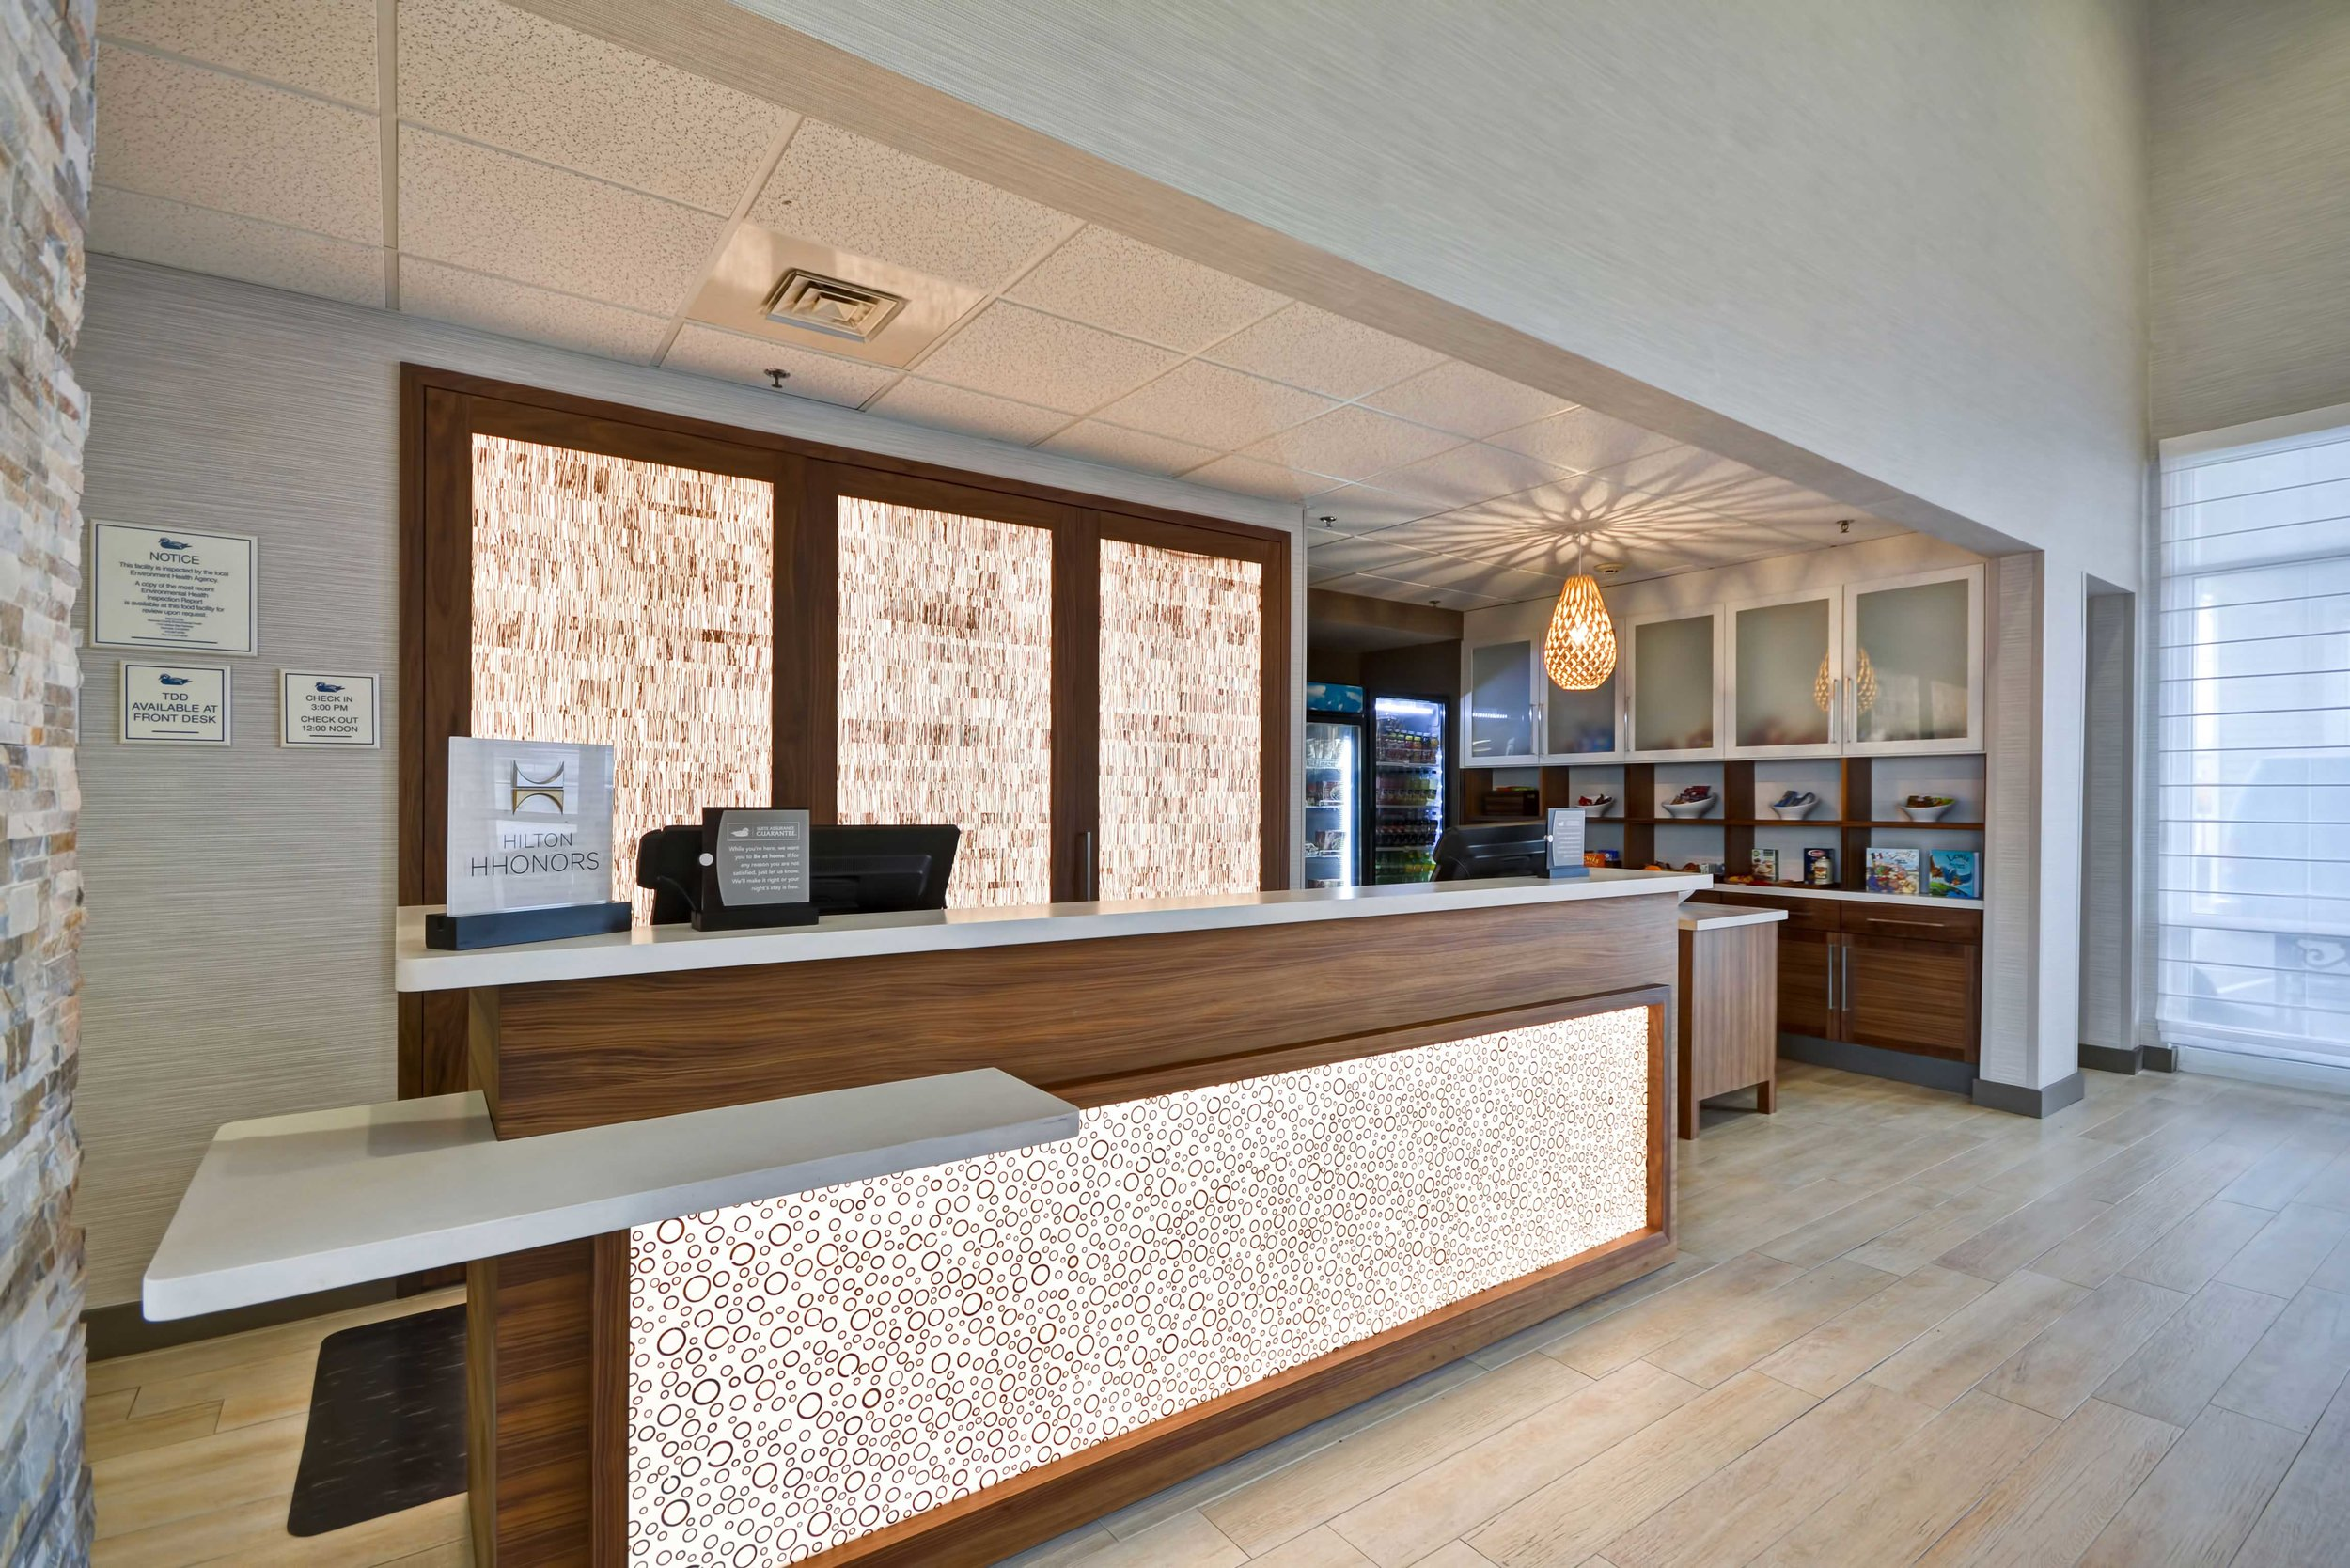 4-Homewood-Suites-Oakland-Front-Desk-Suite-Shop.jpg